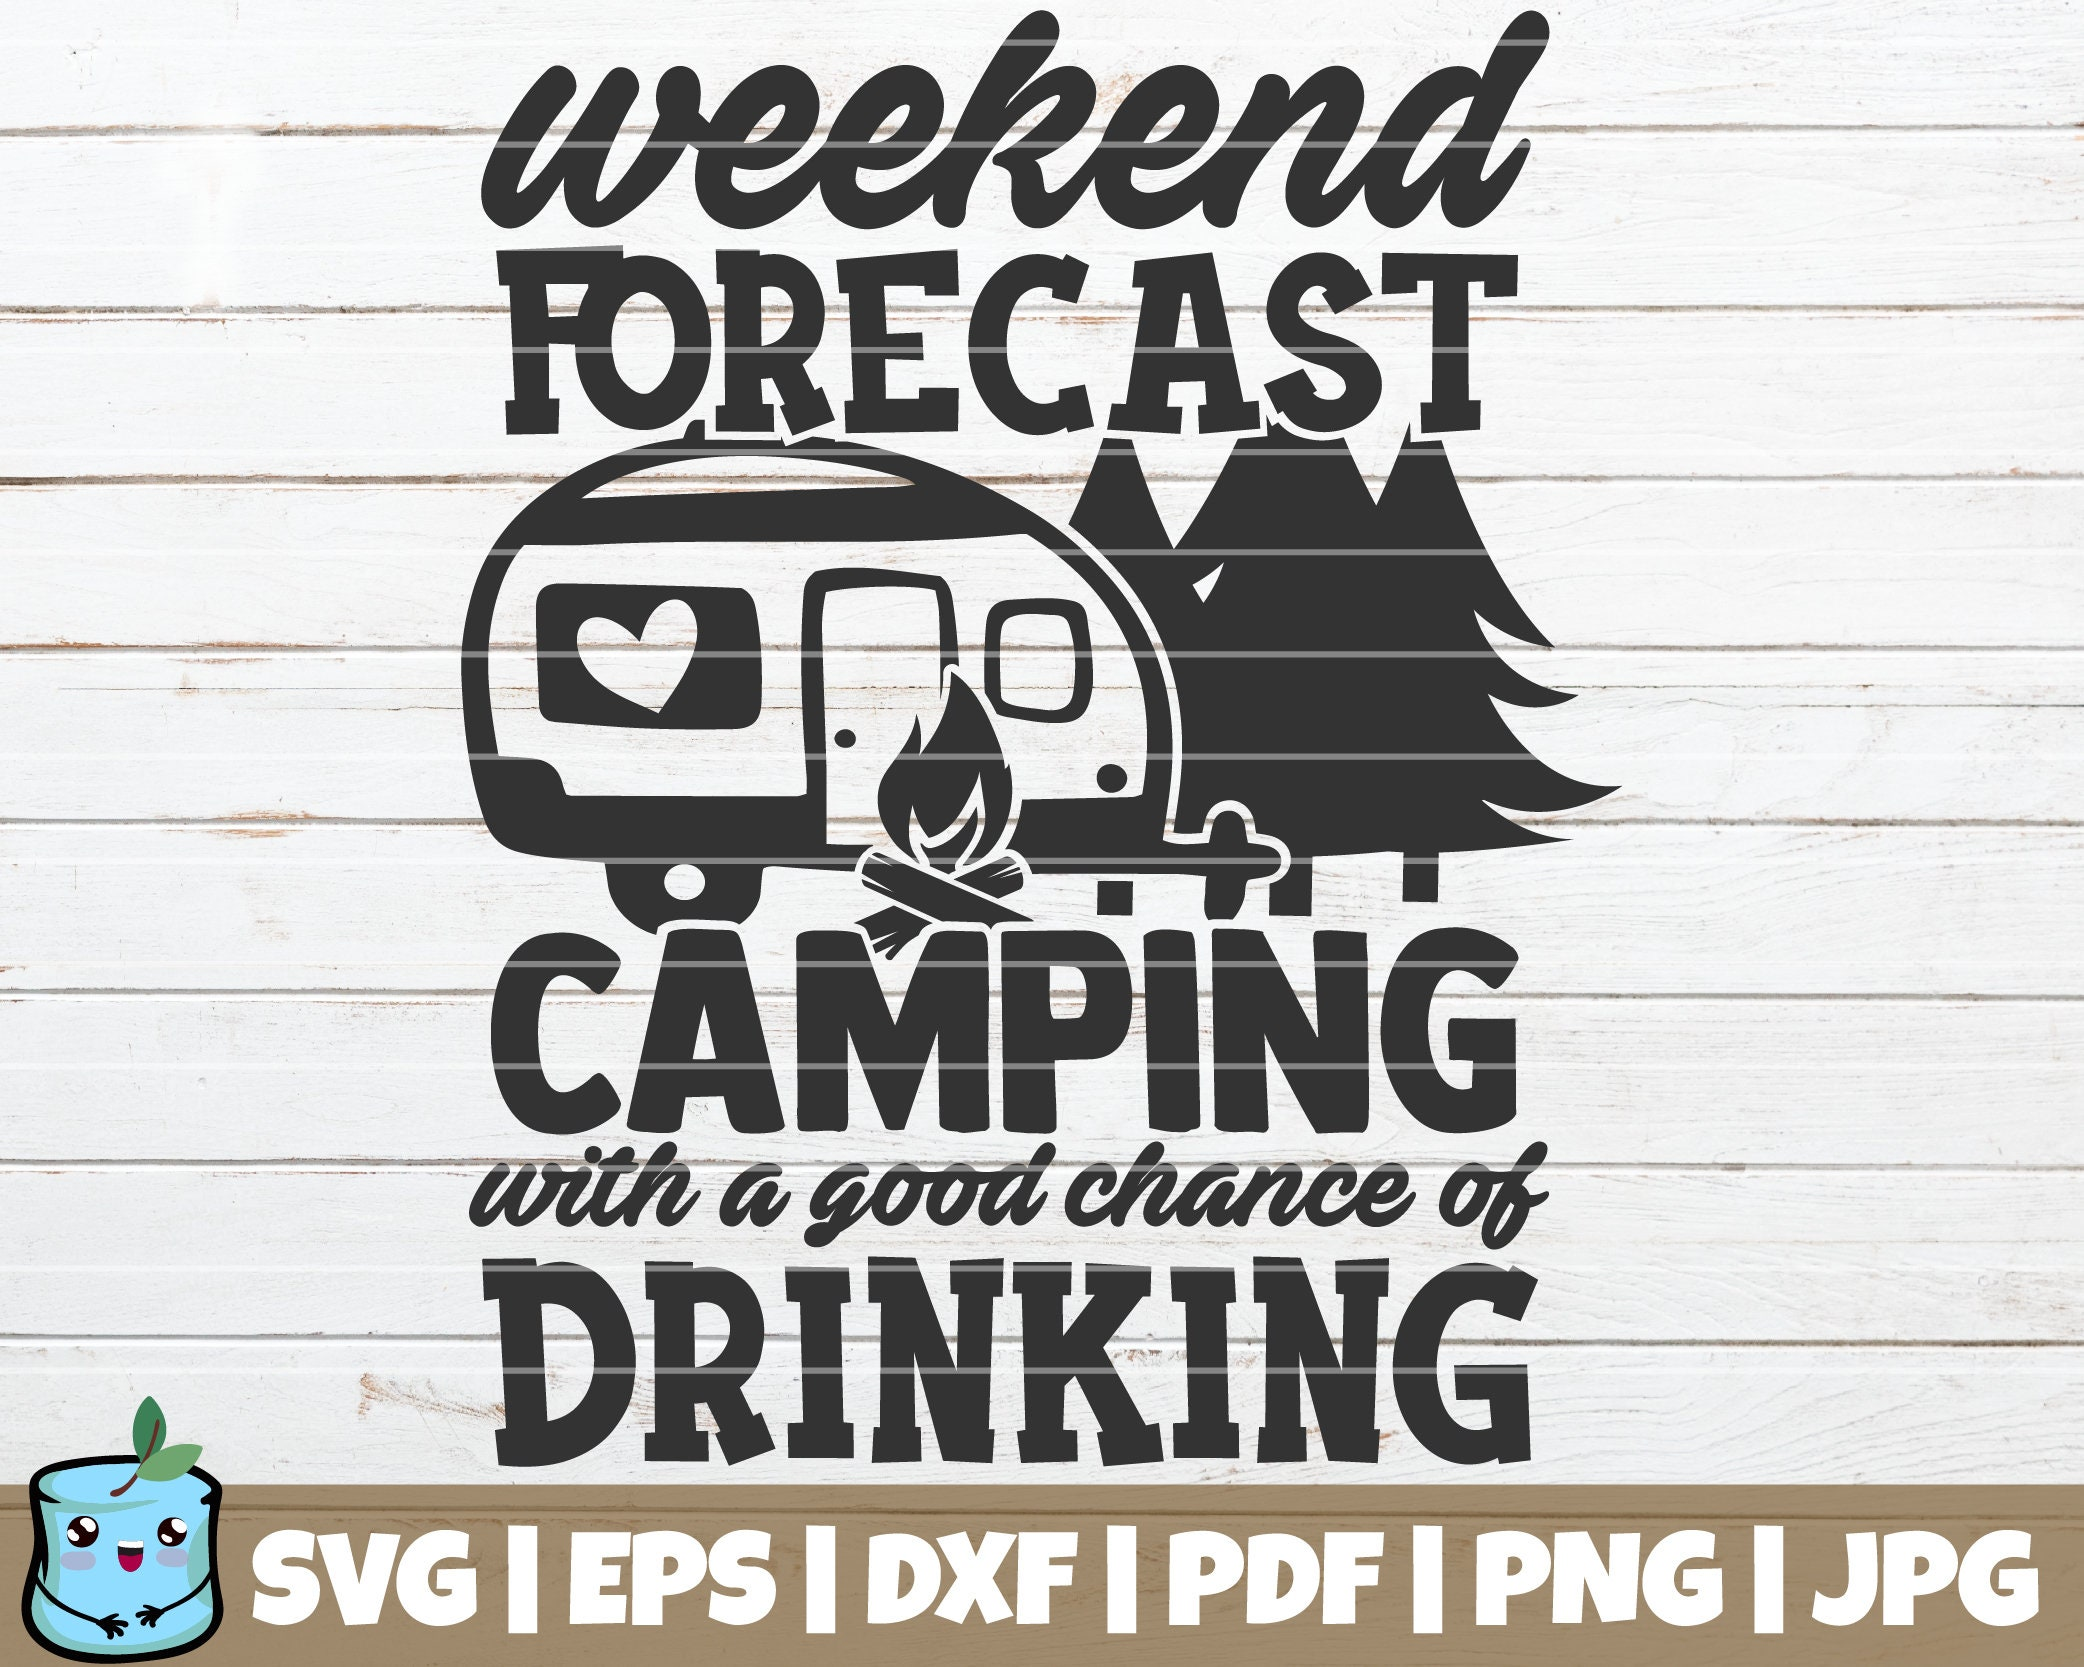 Funny camping svg Weekend Forecast Camping with a Chance of Drinking svg RV life svg,family camping svg png Digital Downlaod